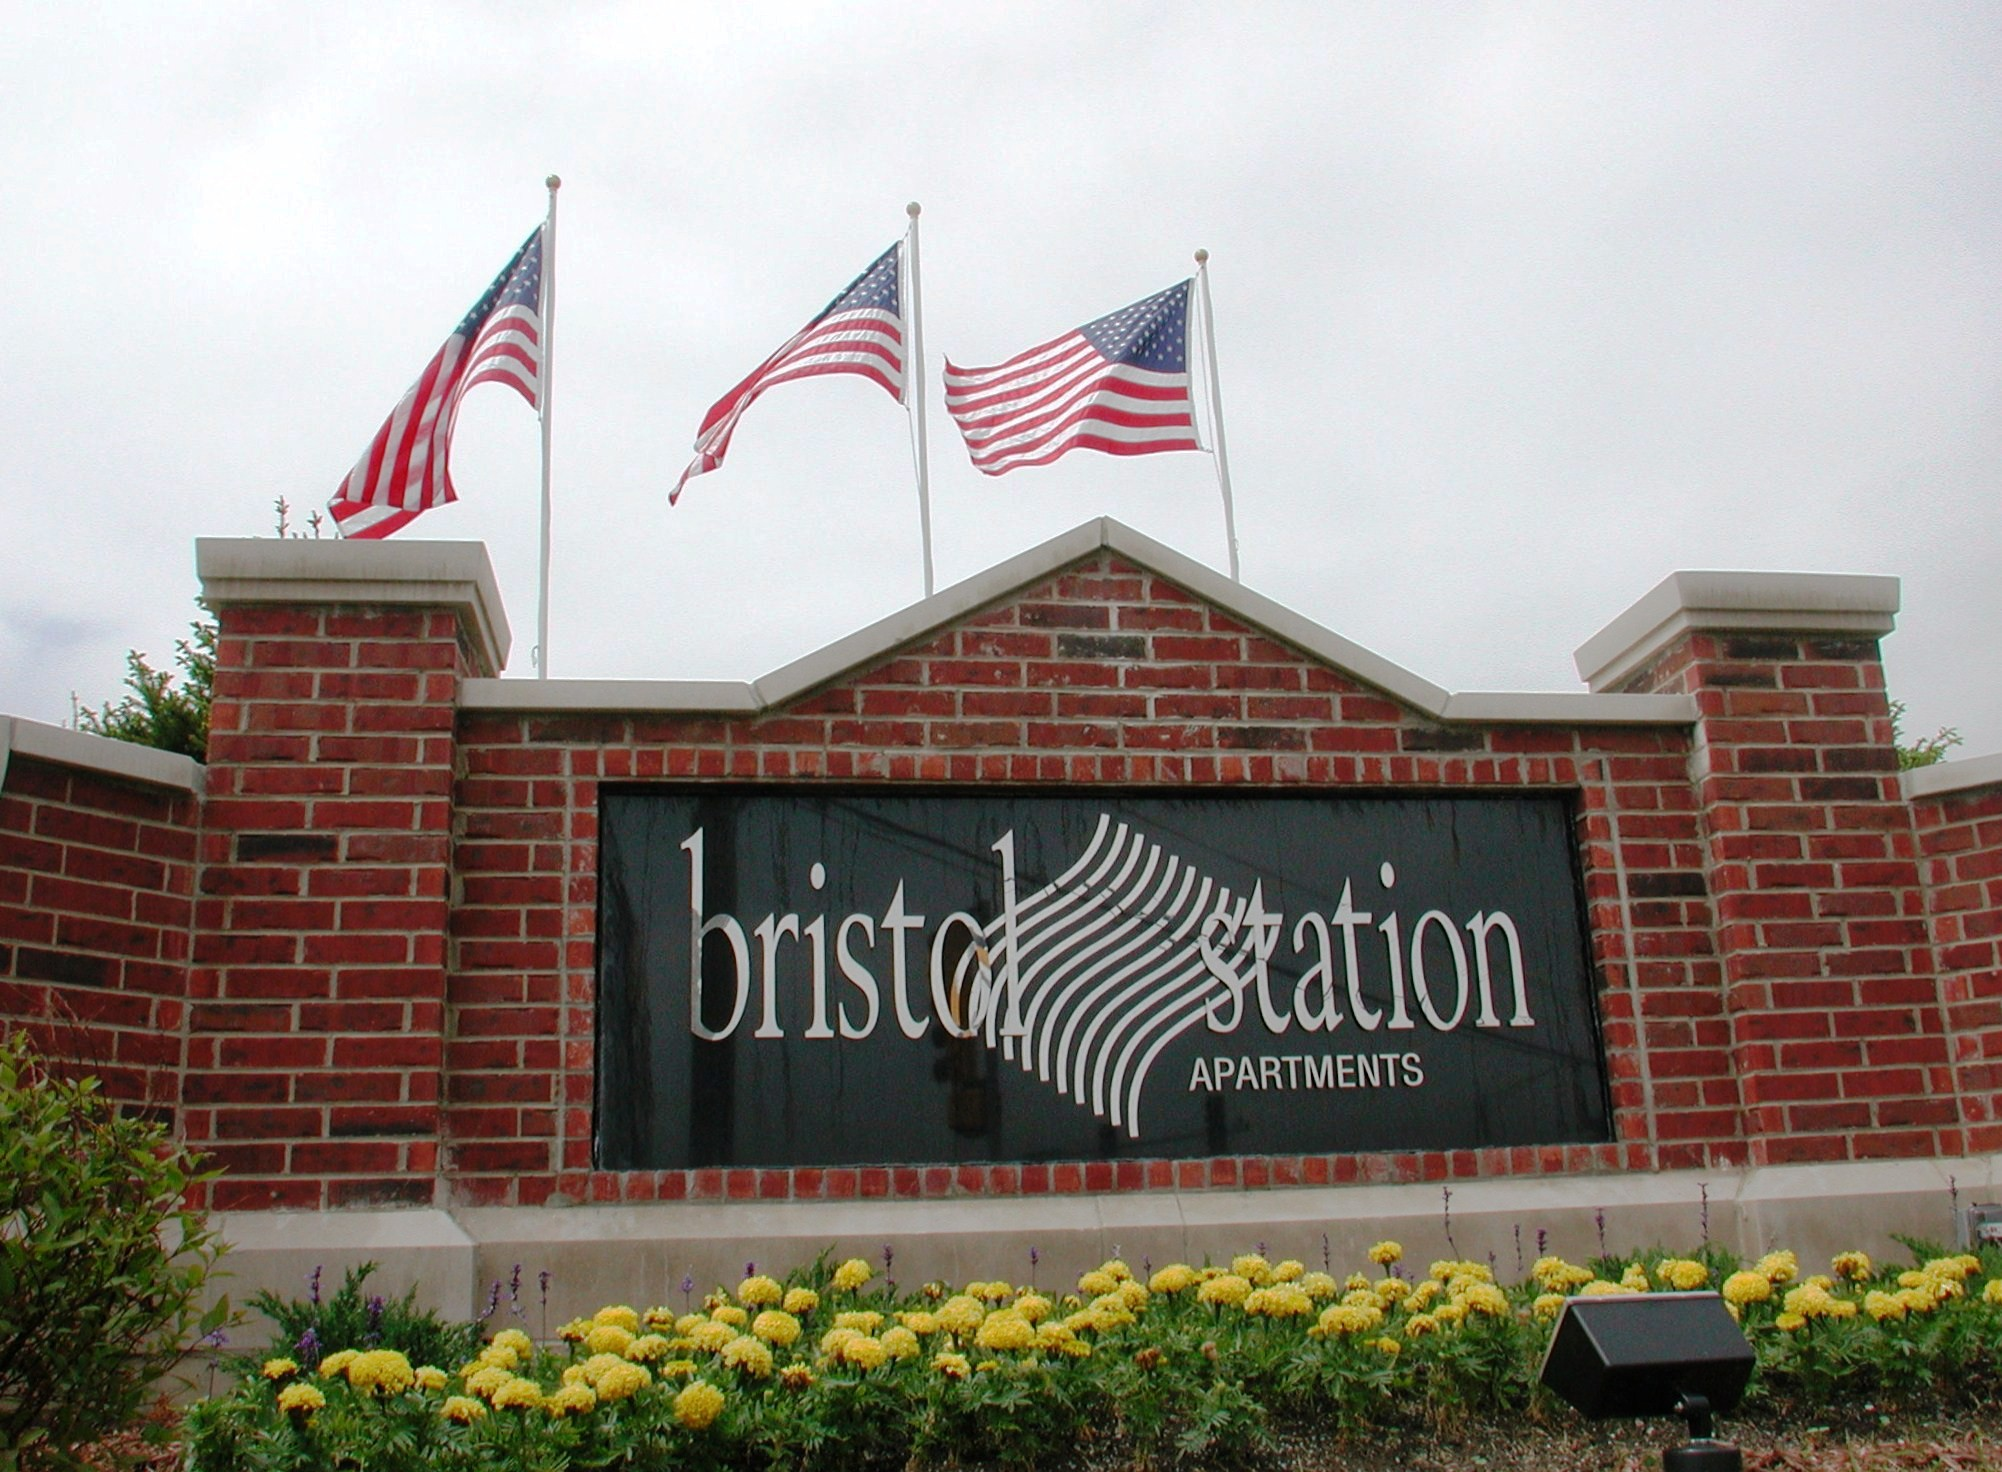 Apartments Near Lewis Bristol Station for Lewis University Students in Romeoville, IL